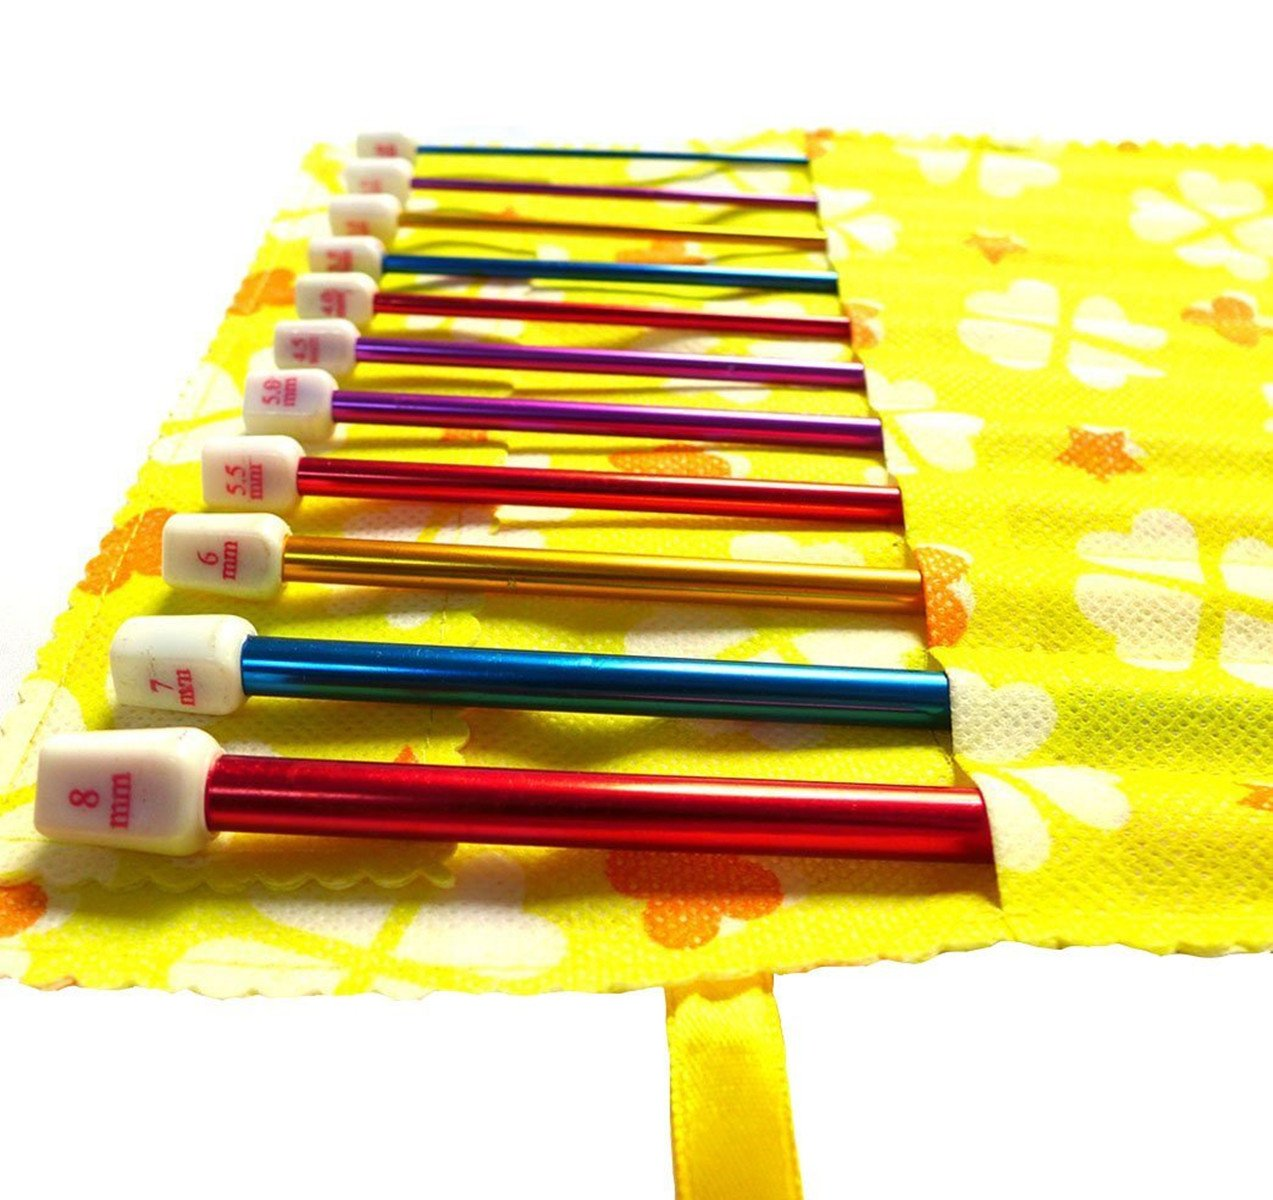 11pces Aluminium Tunisian Afghan Crochet Hook Knitting Needles Set 2mm-8mm in a Yellow/Pink Pouch Seawhisper